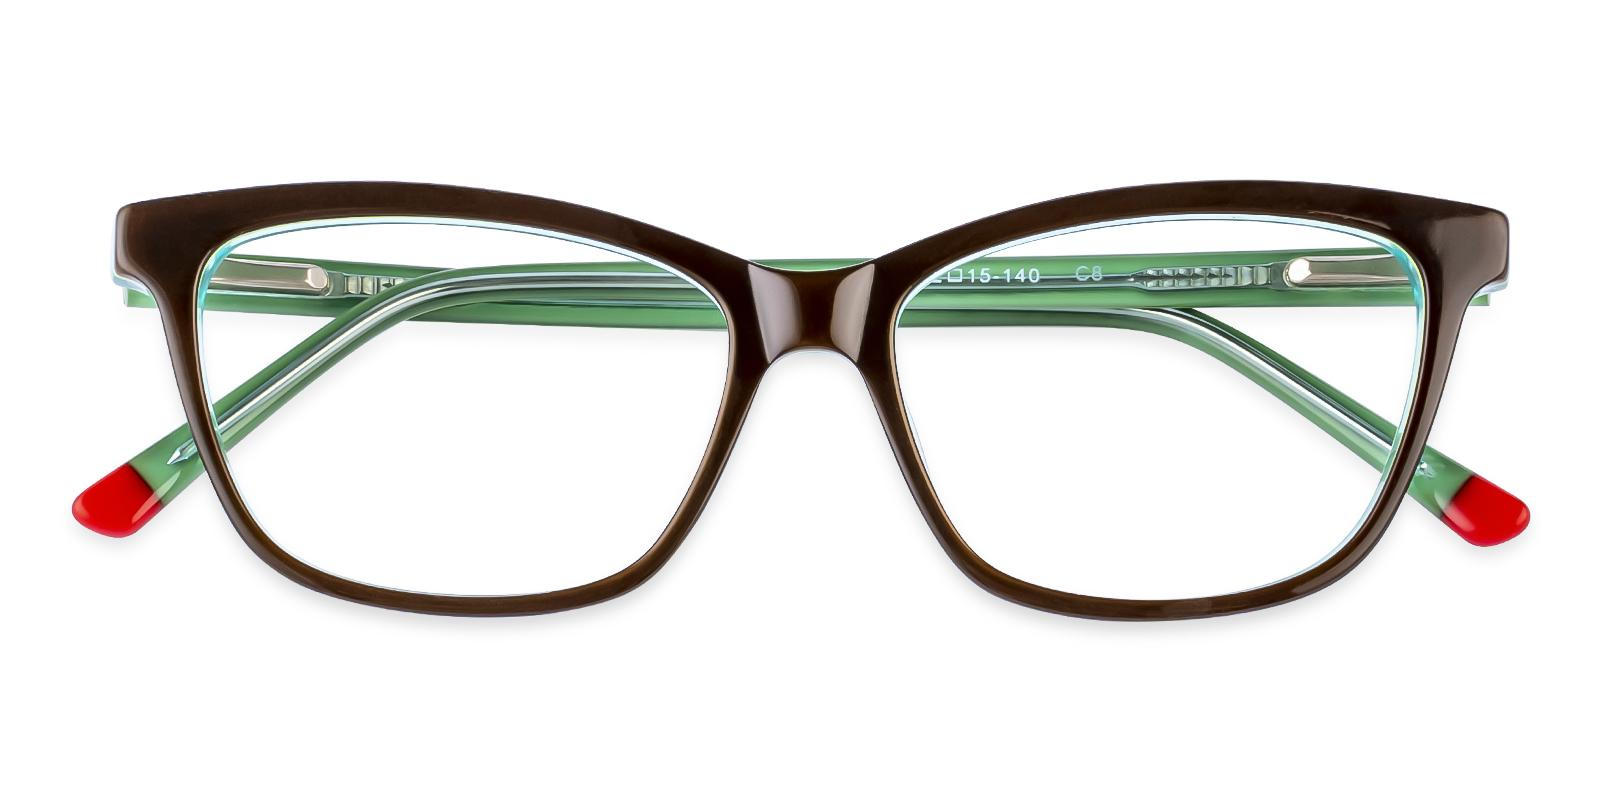 Zion Green Acetate Eyeglasses , SpringHinges , UniversalBridgeFit Frames from ABBE Glasses